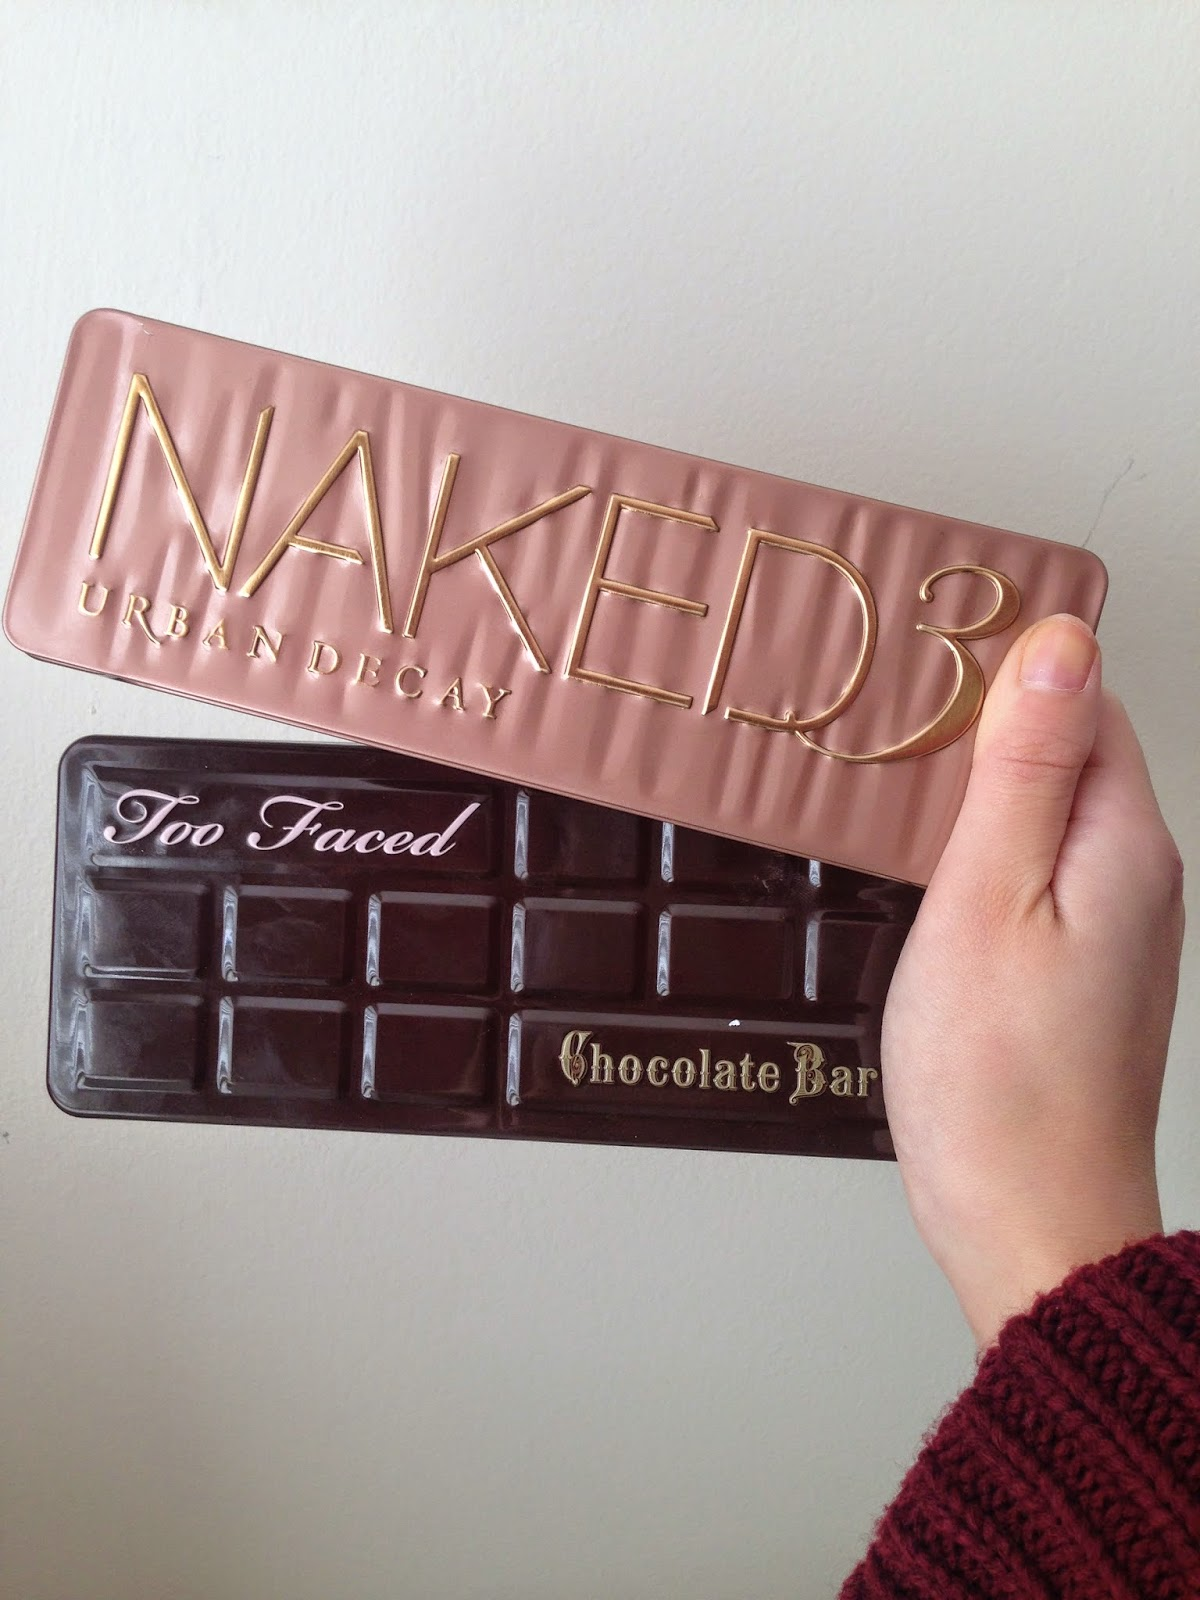 WARPAINT and Unicorns: Too Faced Chocolate Bar and Semi